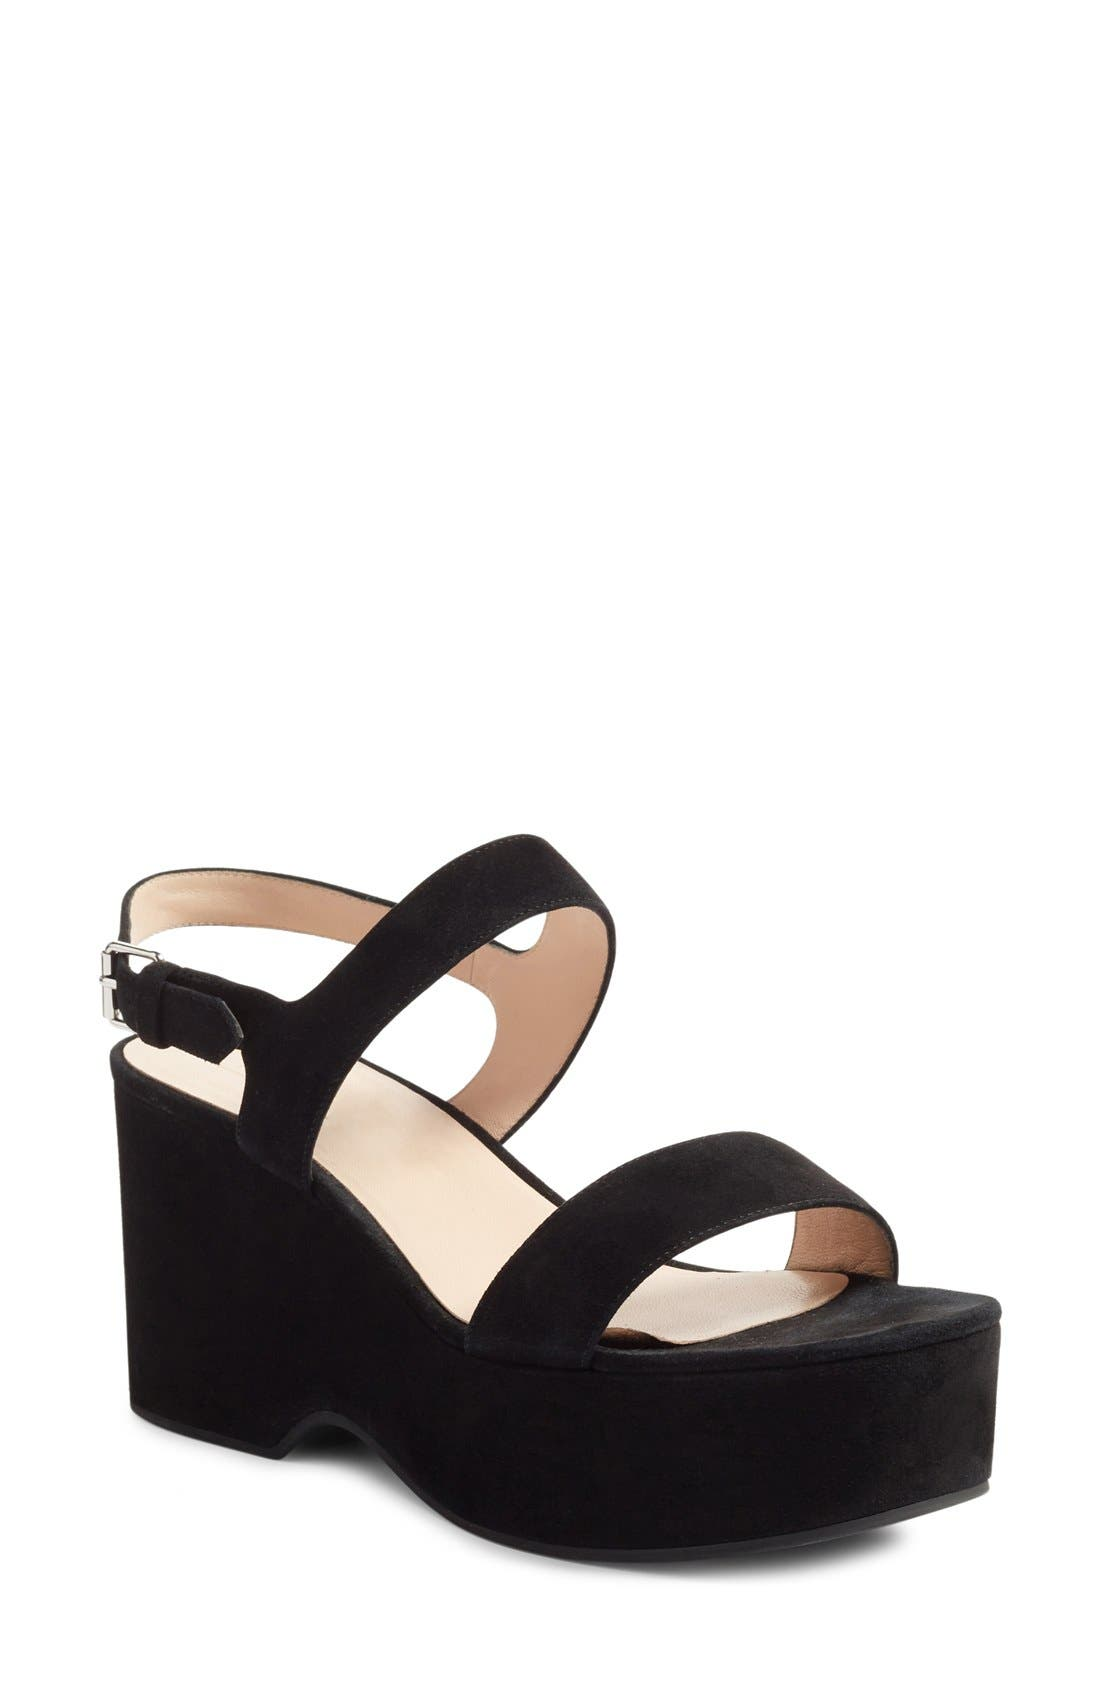 Sale Big Sale Buy Cheap Affordable Marc Jacobs LILLYS WEDGE women's Sandals in PgSEYo2n